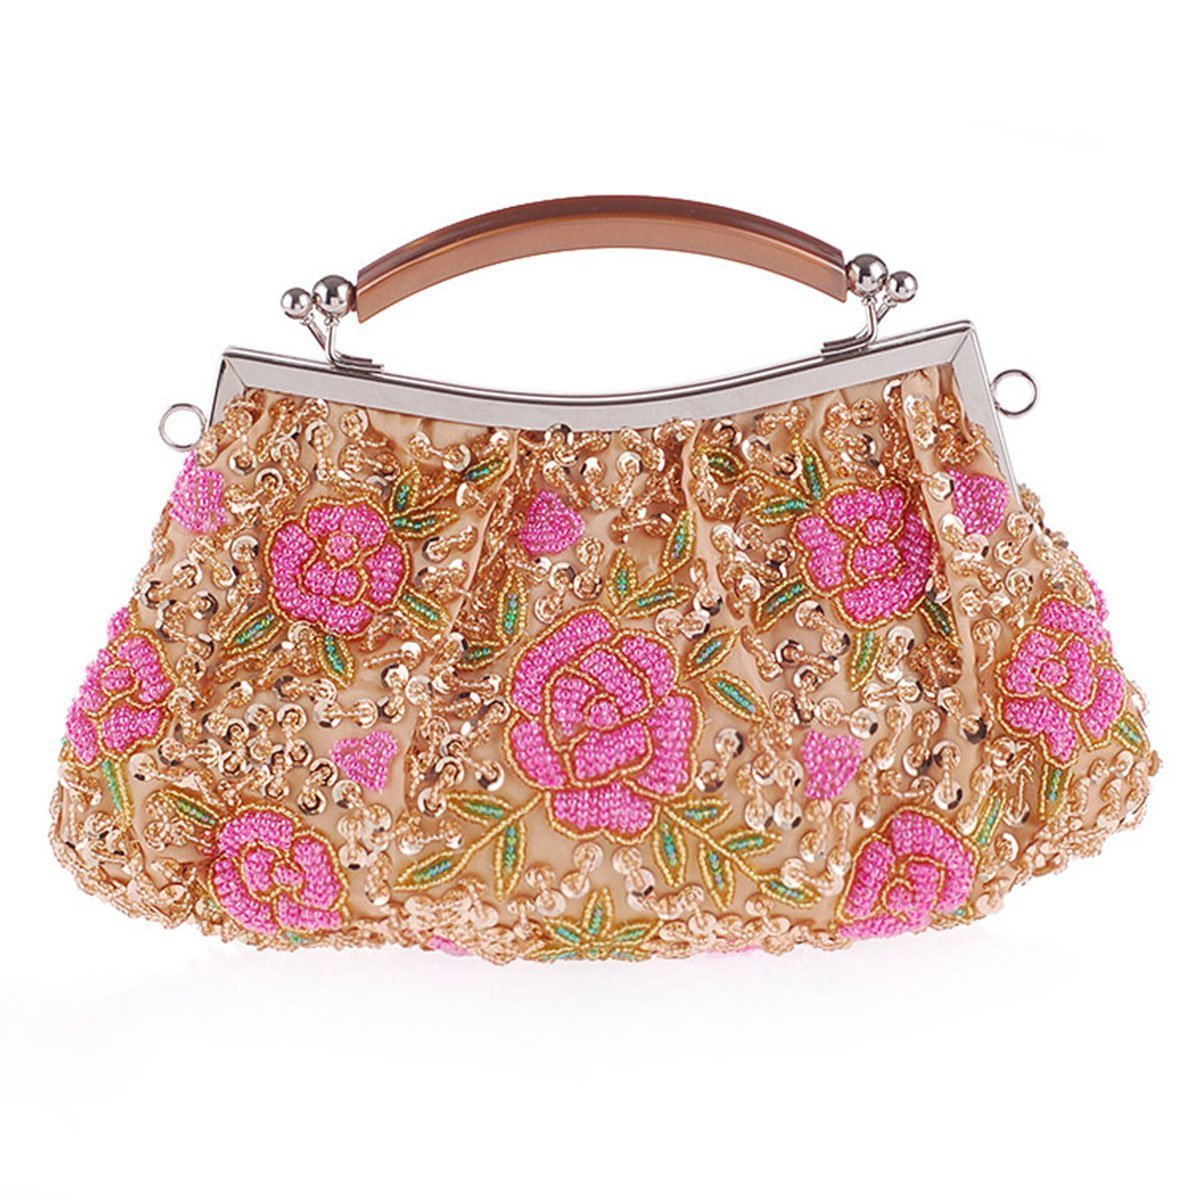 Gold Glitter Floral Clutch Bag